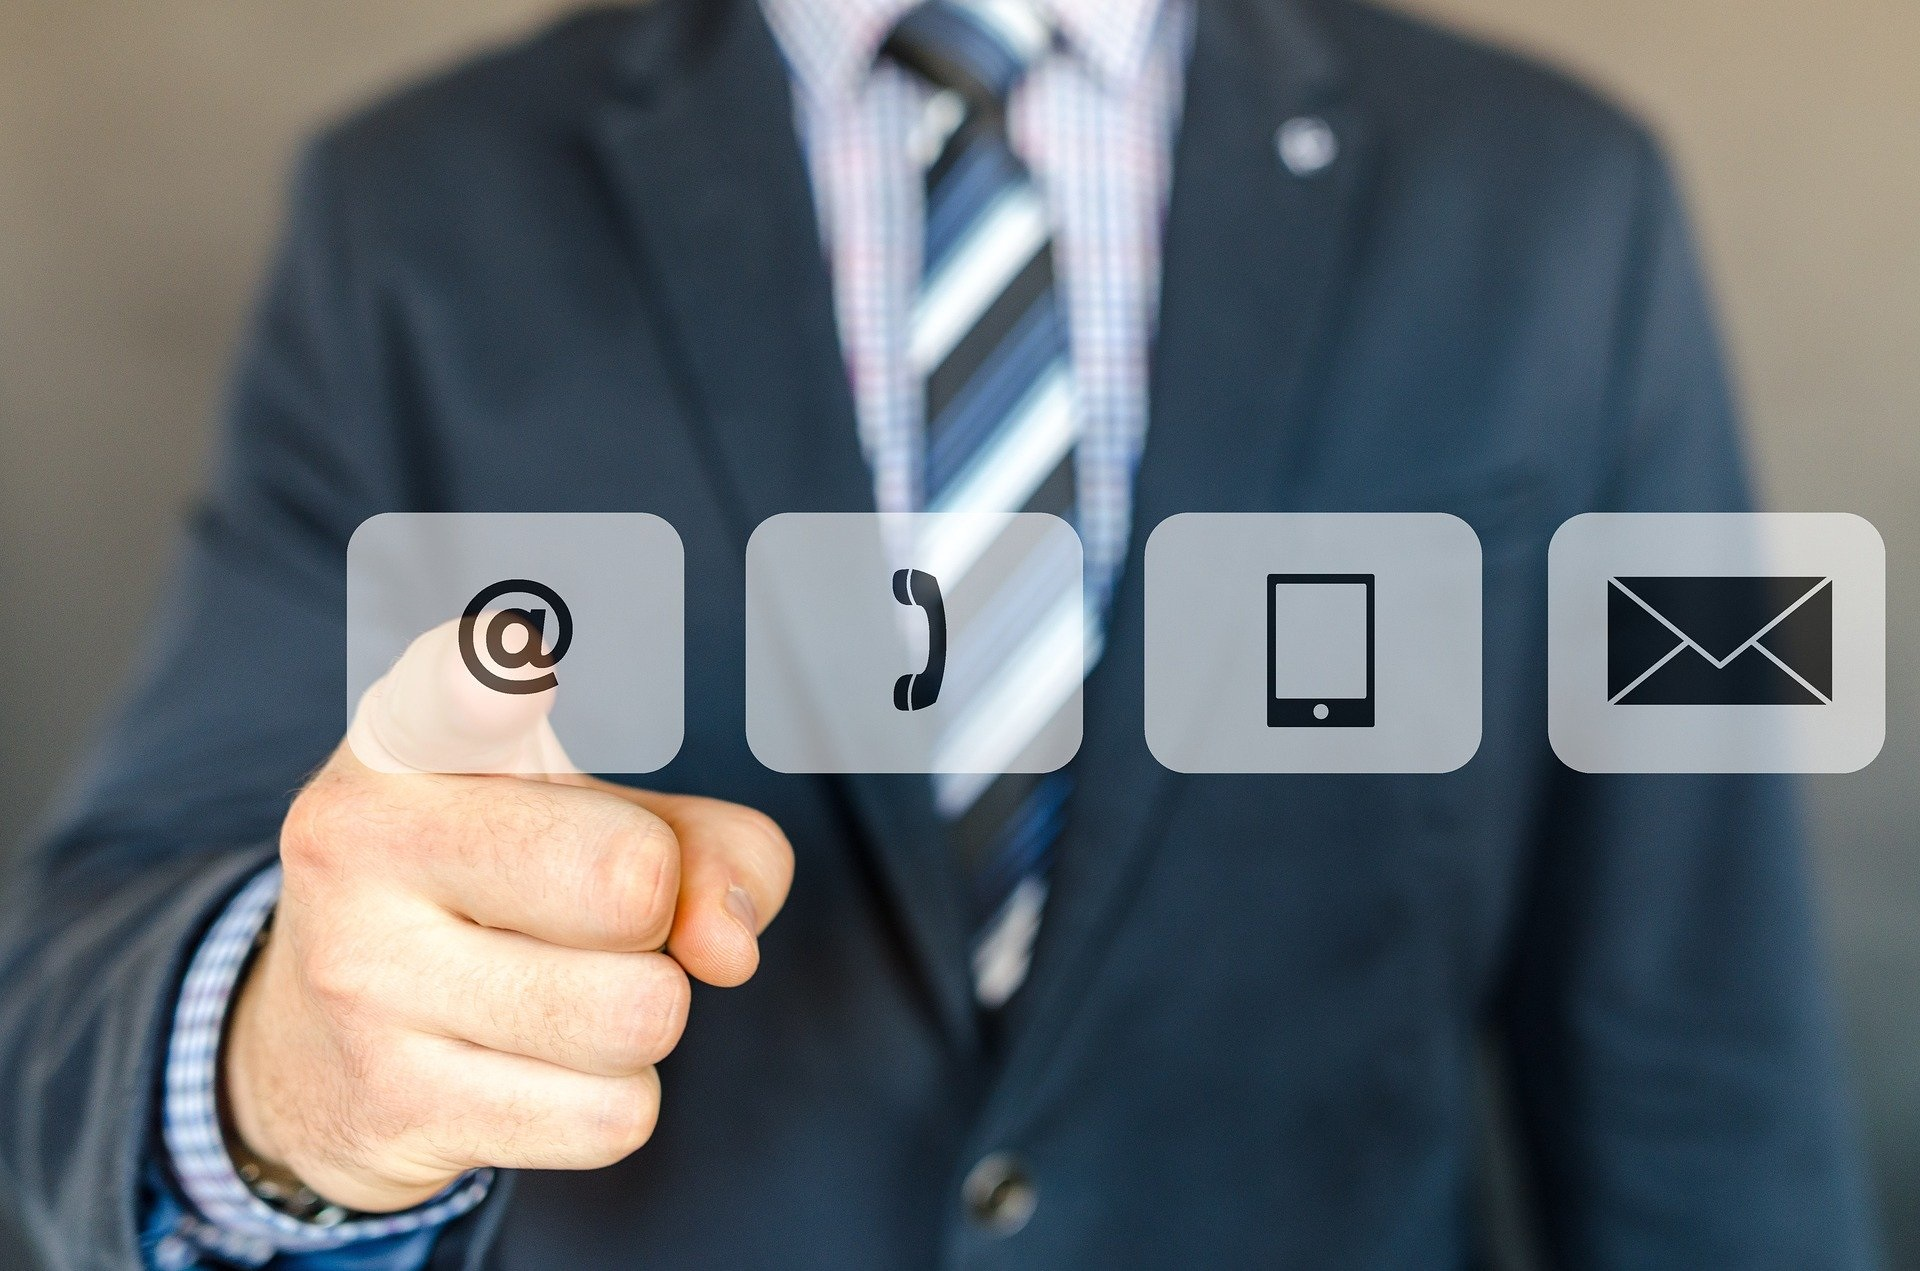 outside sales professional in a blue suit selecting internet icon, with 4 icons for internet, phone, mobile app, and email